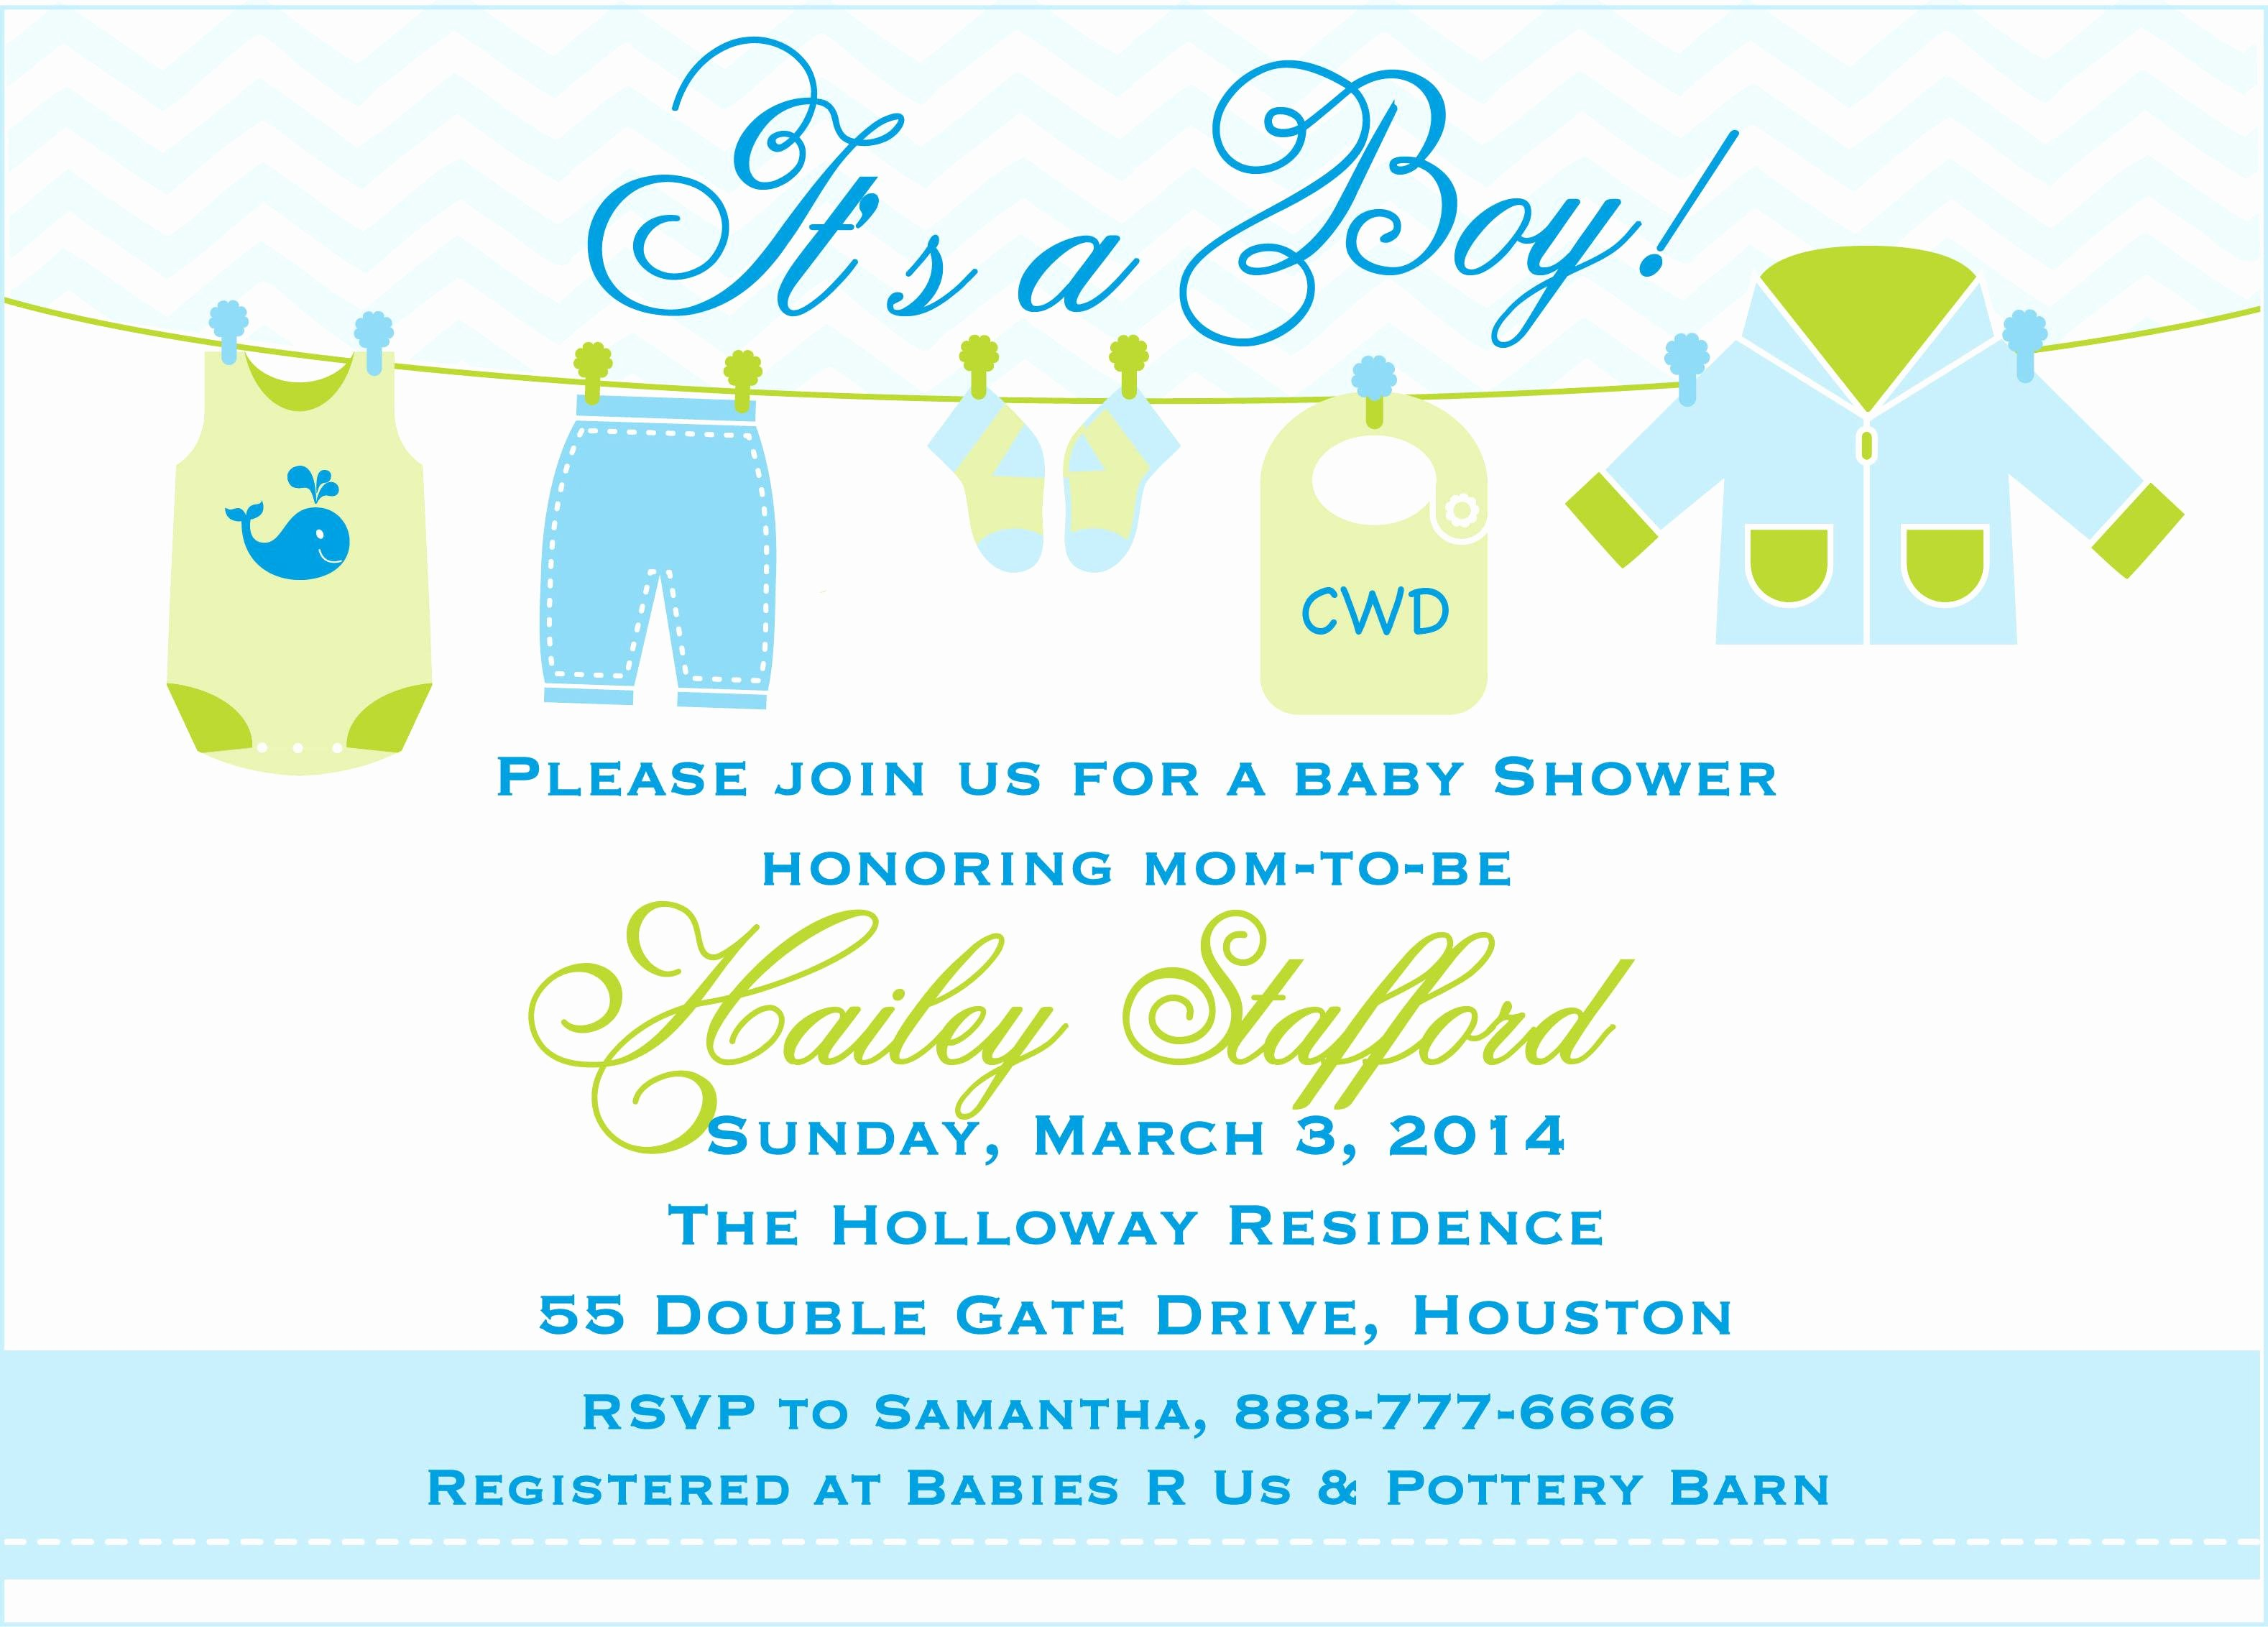 Baby Shower Template Word Best Of Baby Shower Invitation Templates for Word